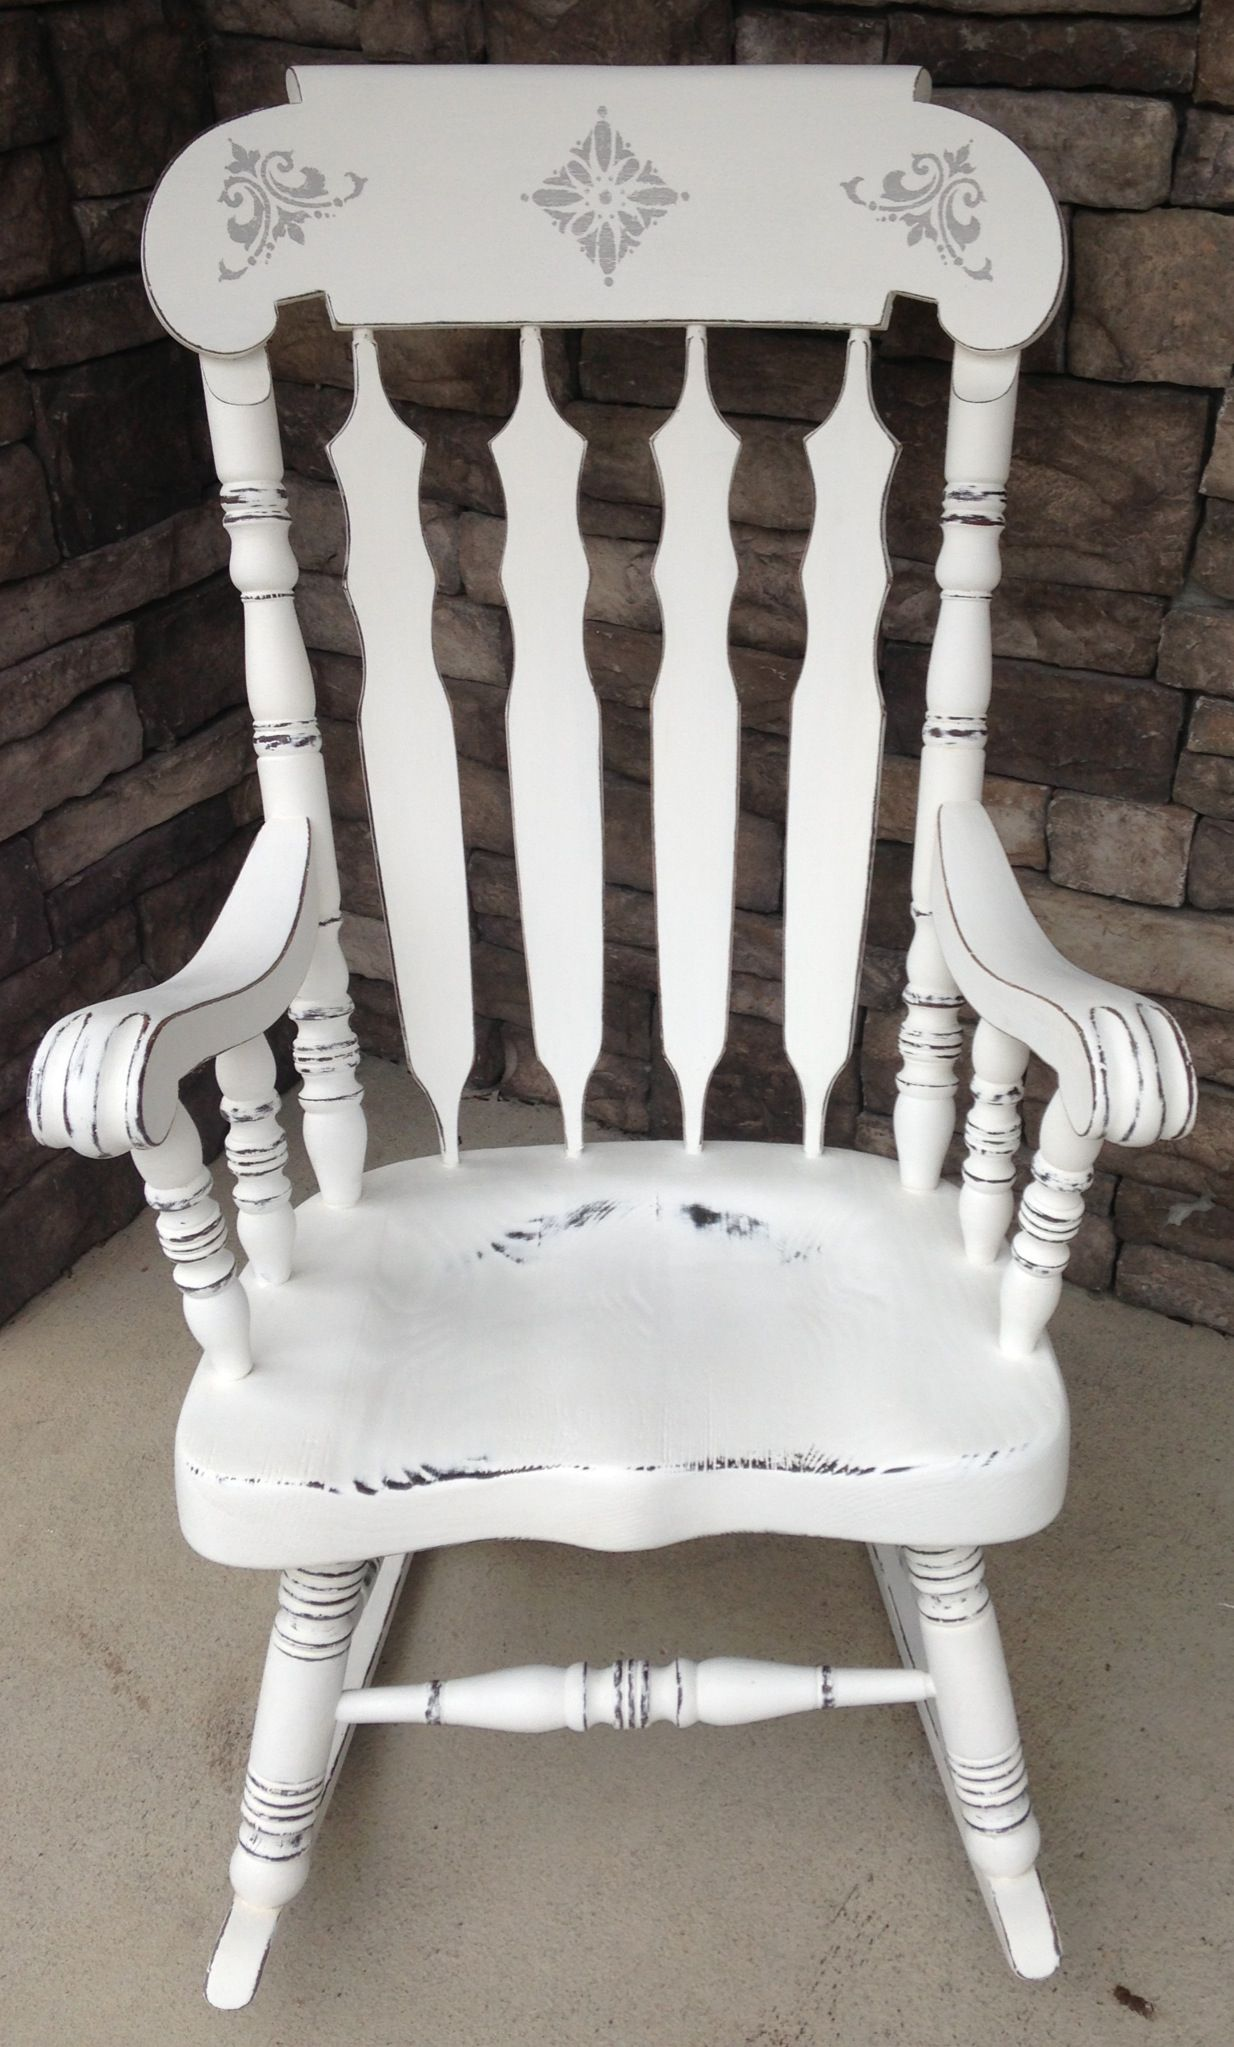 Amazing Rocking Chairs Amazing Refinished Rocking Chair Done In Ann Sloan 39s Pure